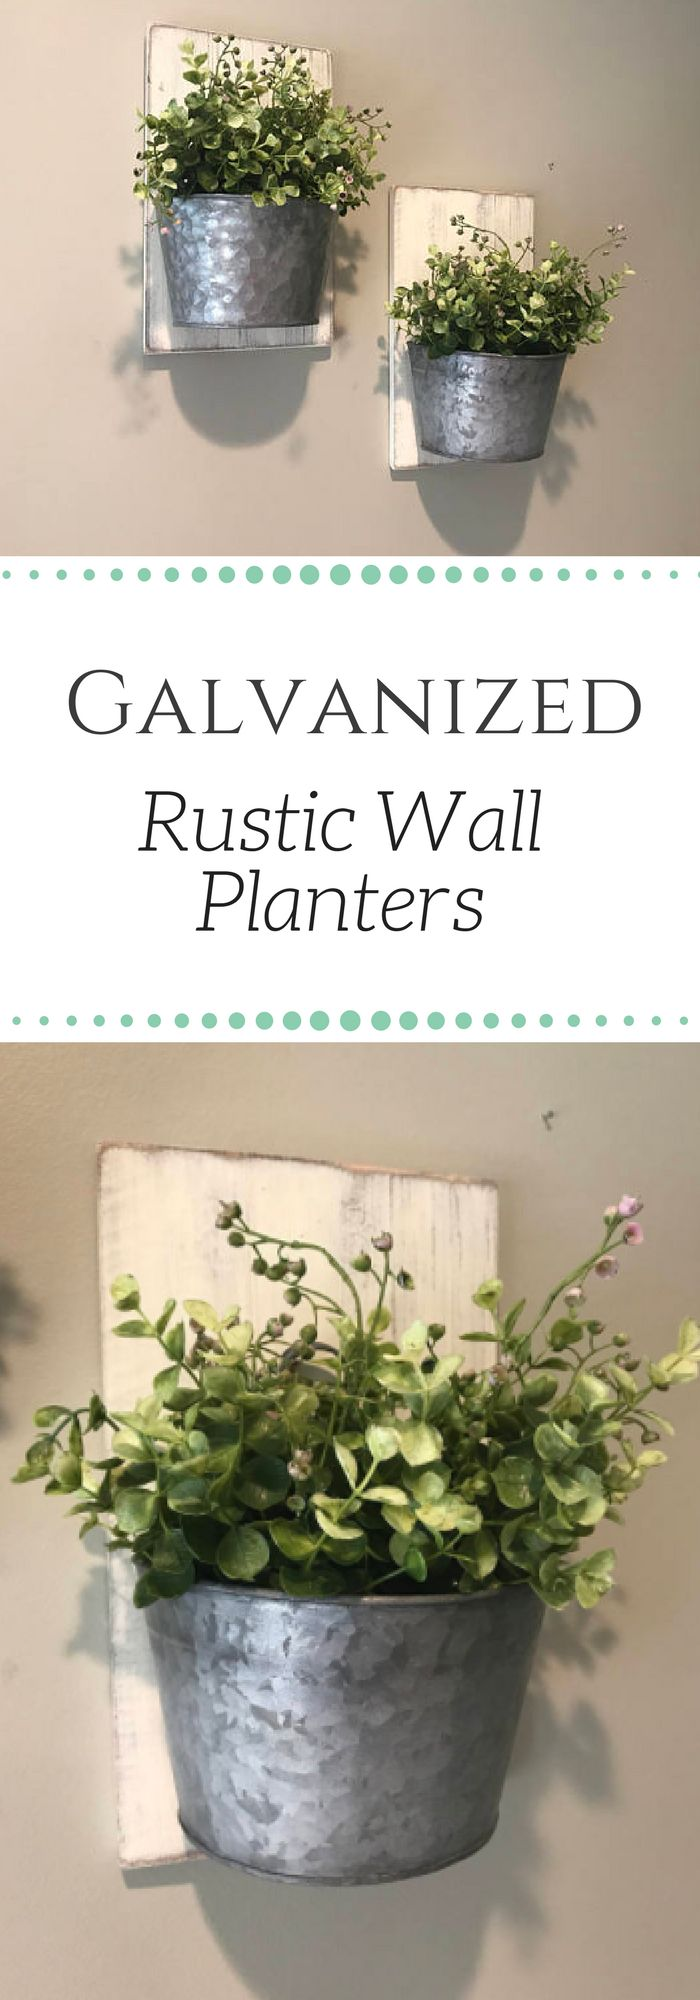 Beautiful Farmhouse, Rustic Style Galvanized Wall Planter. These rustic style wall planters would look great in any home going for a farmhouse, rustic, or vintage style look. Bringing the outdoors in! #farmhouse #homedecorating #walldecor #ad